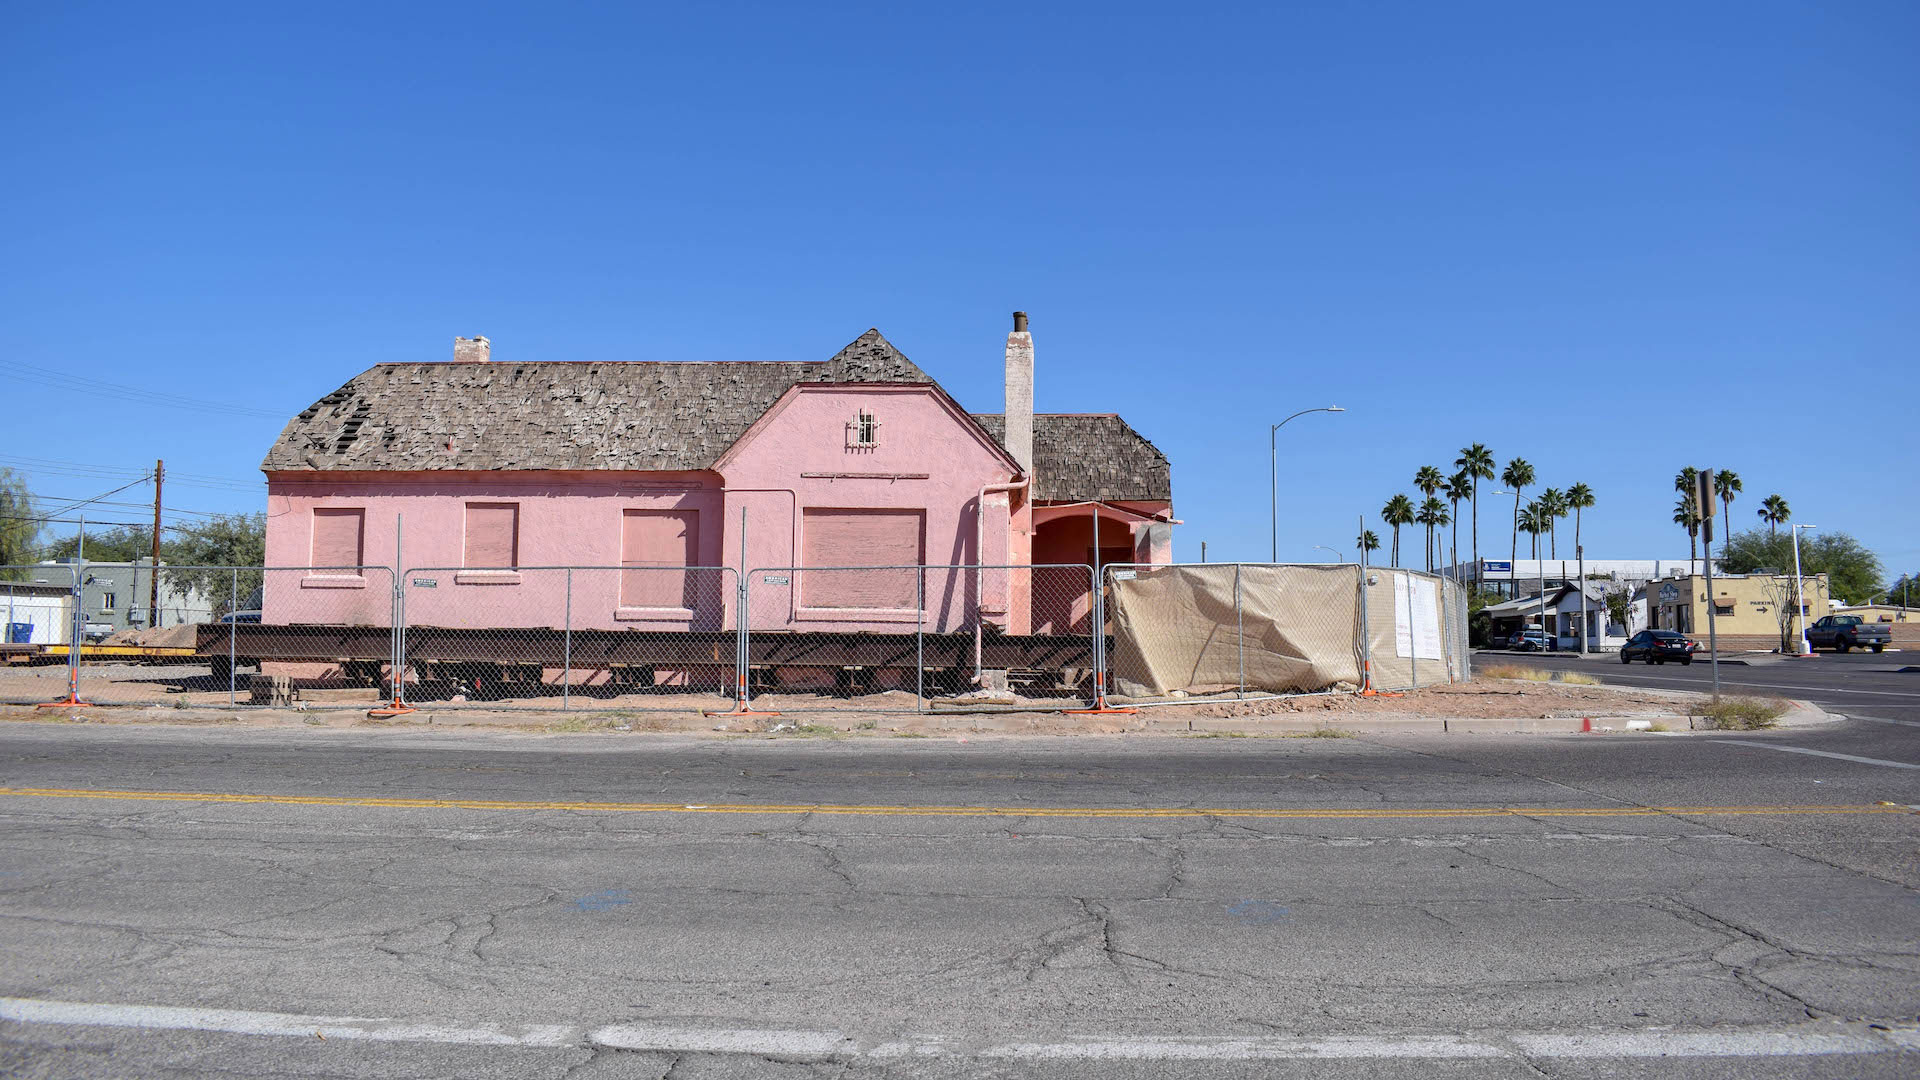 Historic bungalows along Broadway Blvd were moved as part of the preparation for widening of the road.